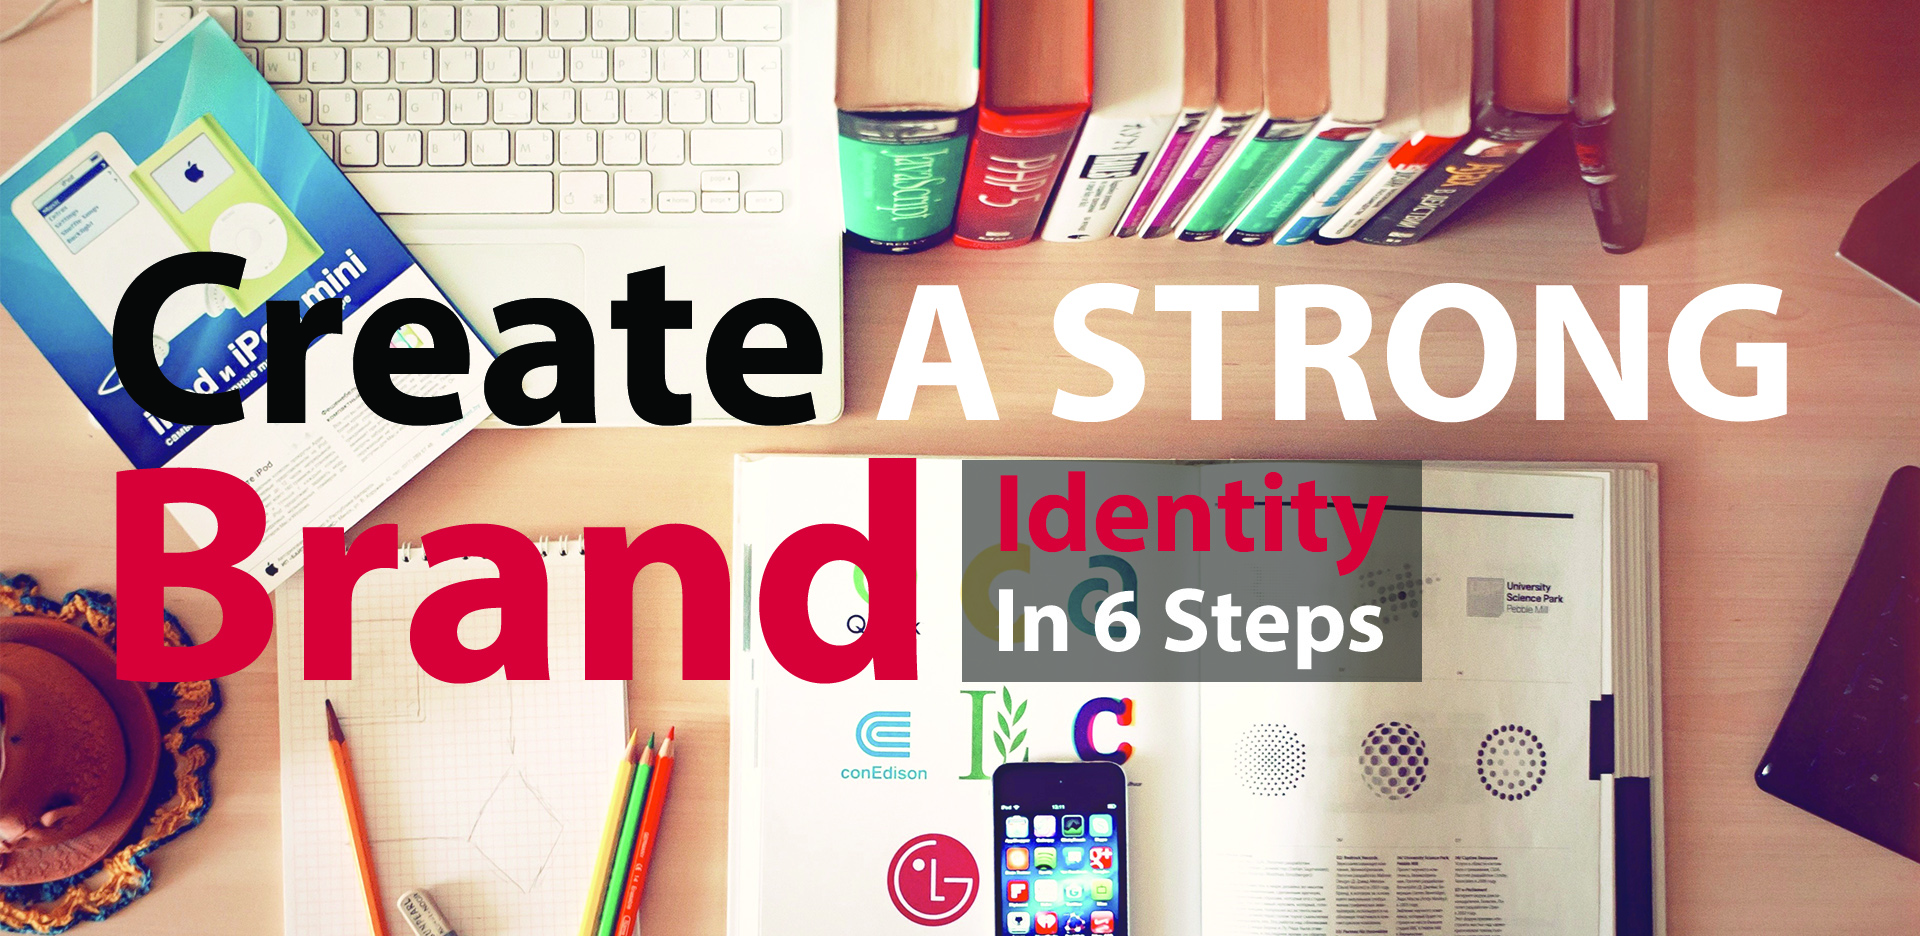 How to Create a Strong Brand Identity in 6 Steps